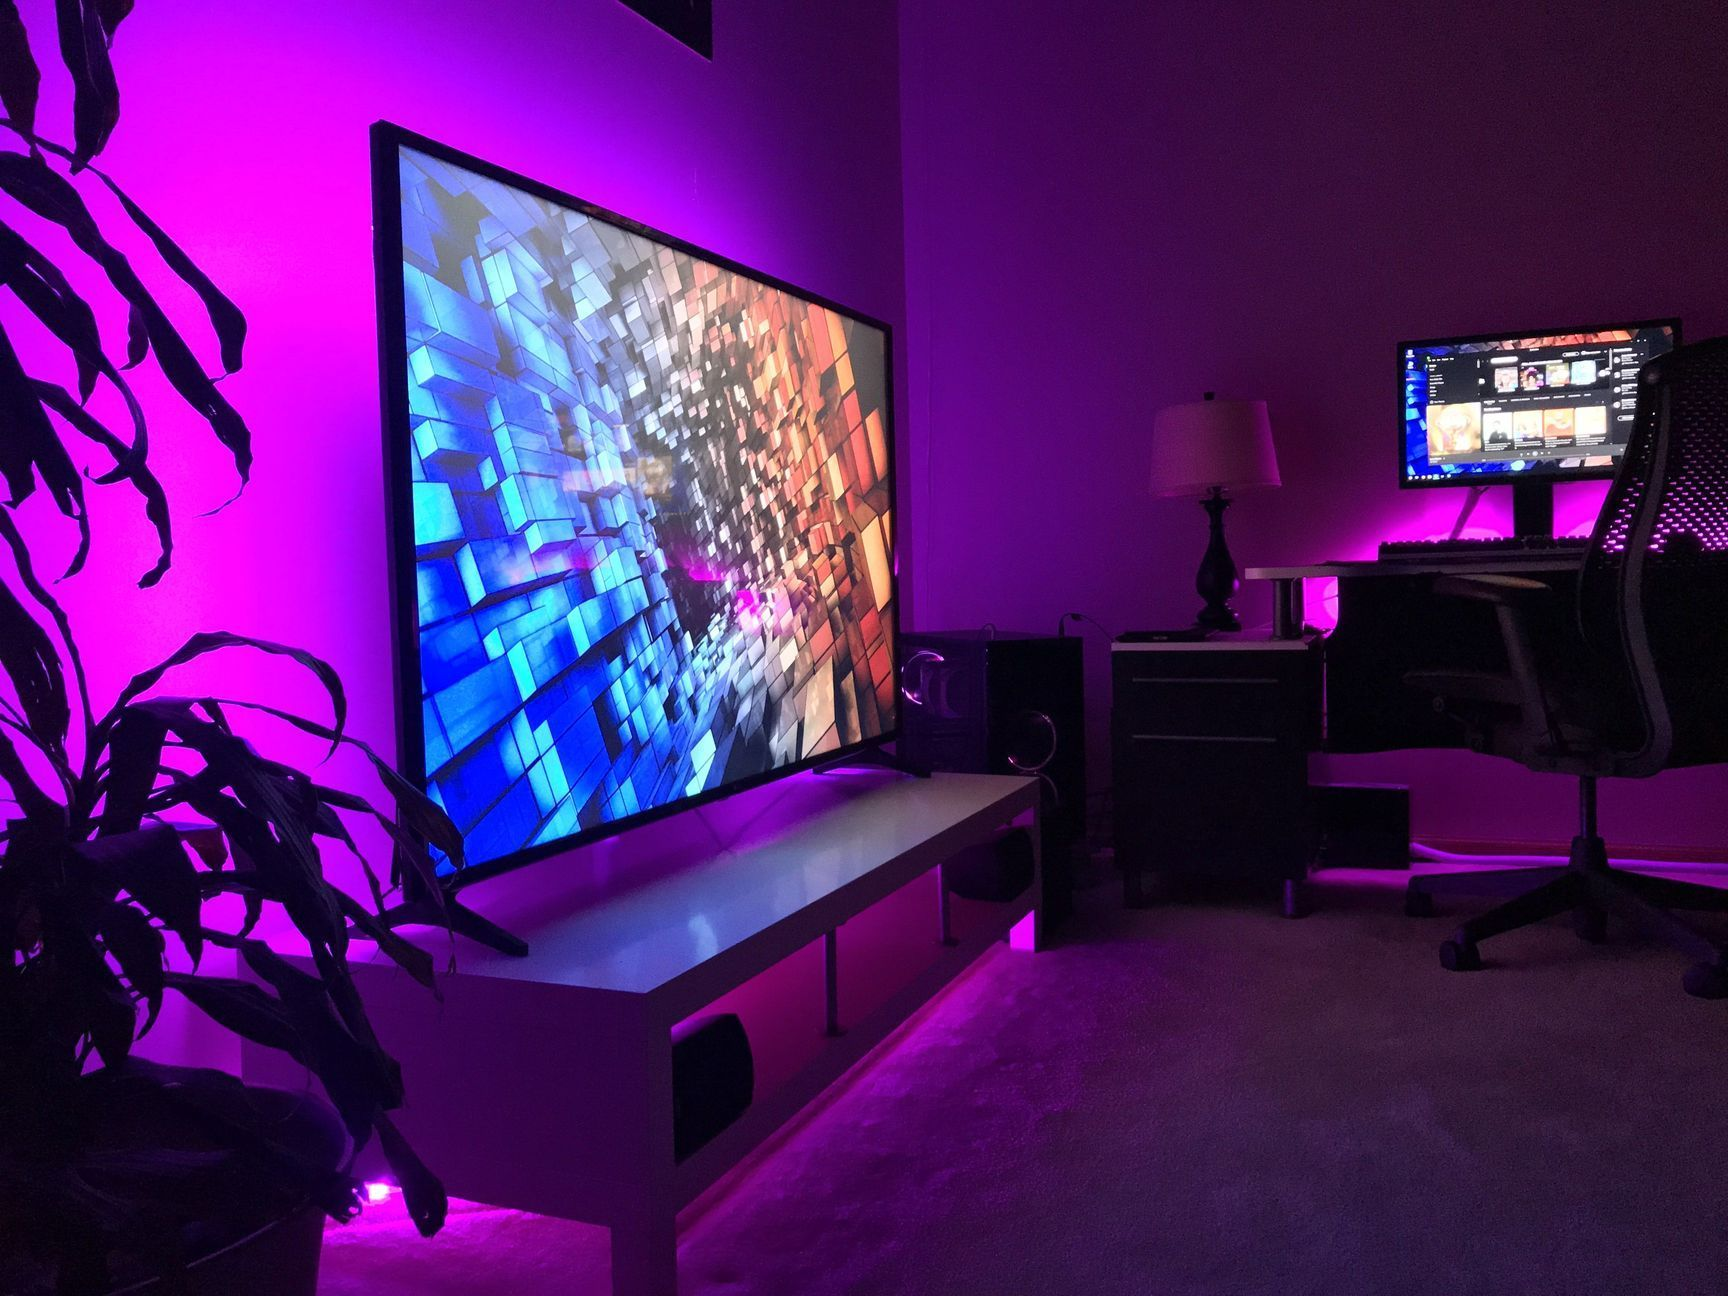 5 Most Recommended Video Game Room Ideas Homedecor Video Game